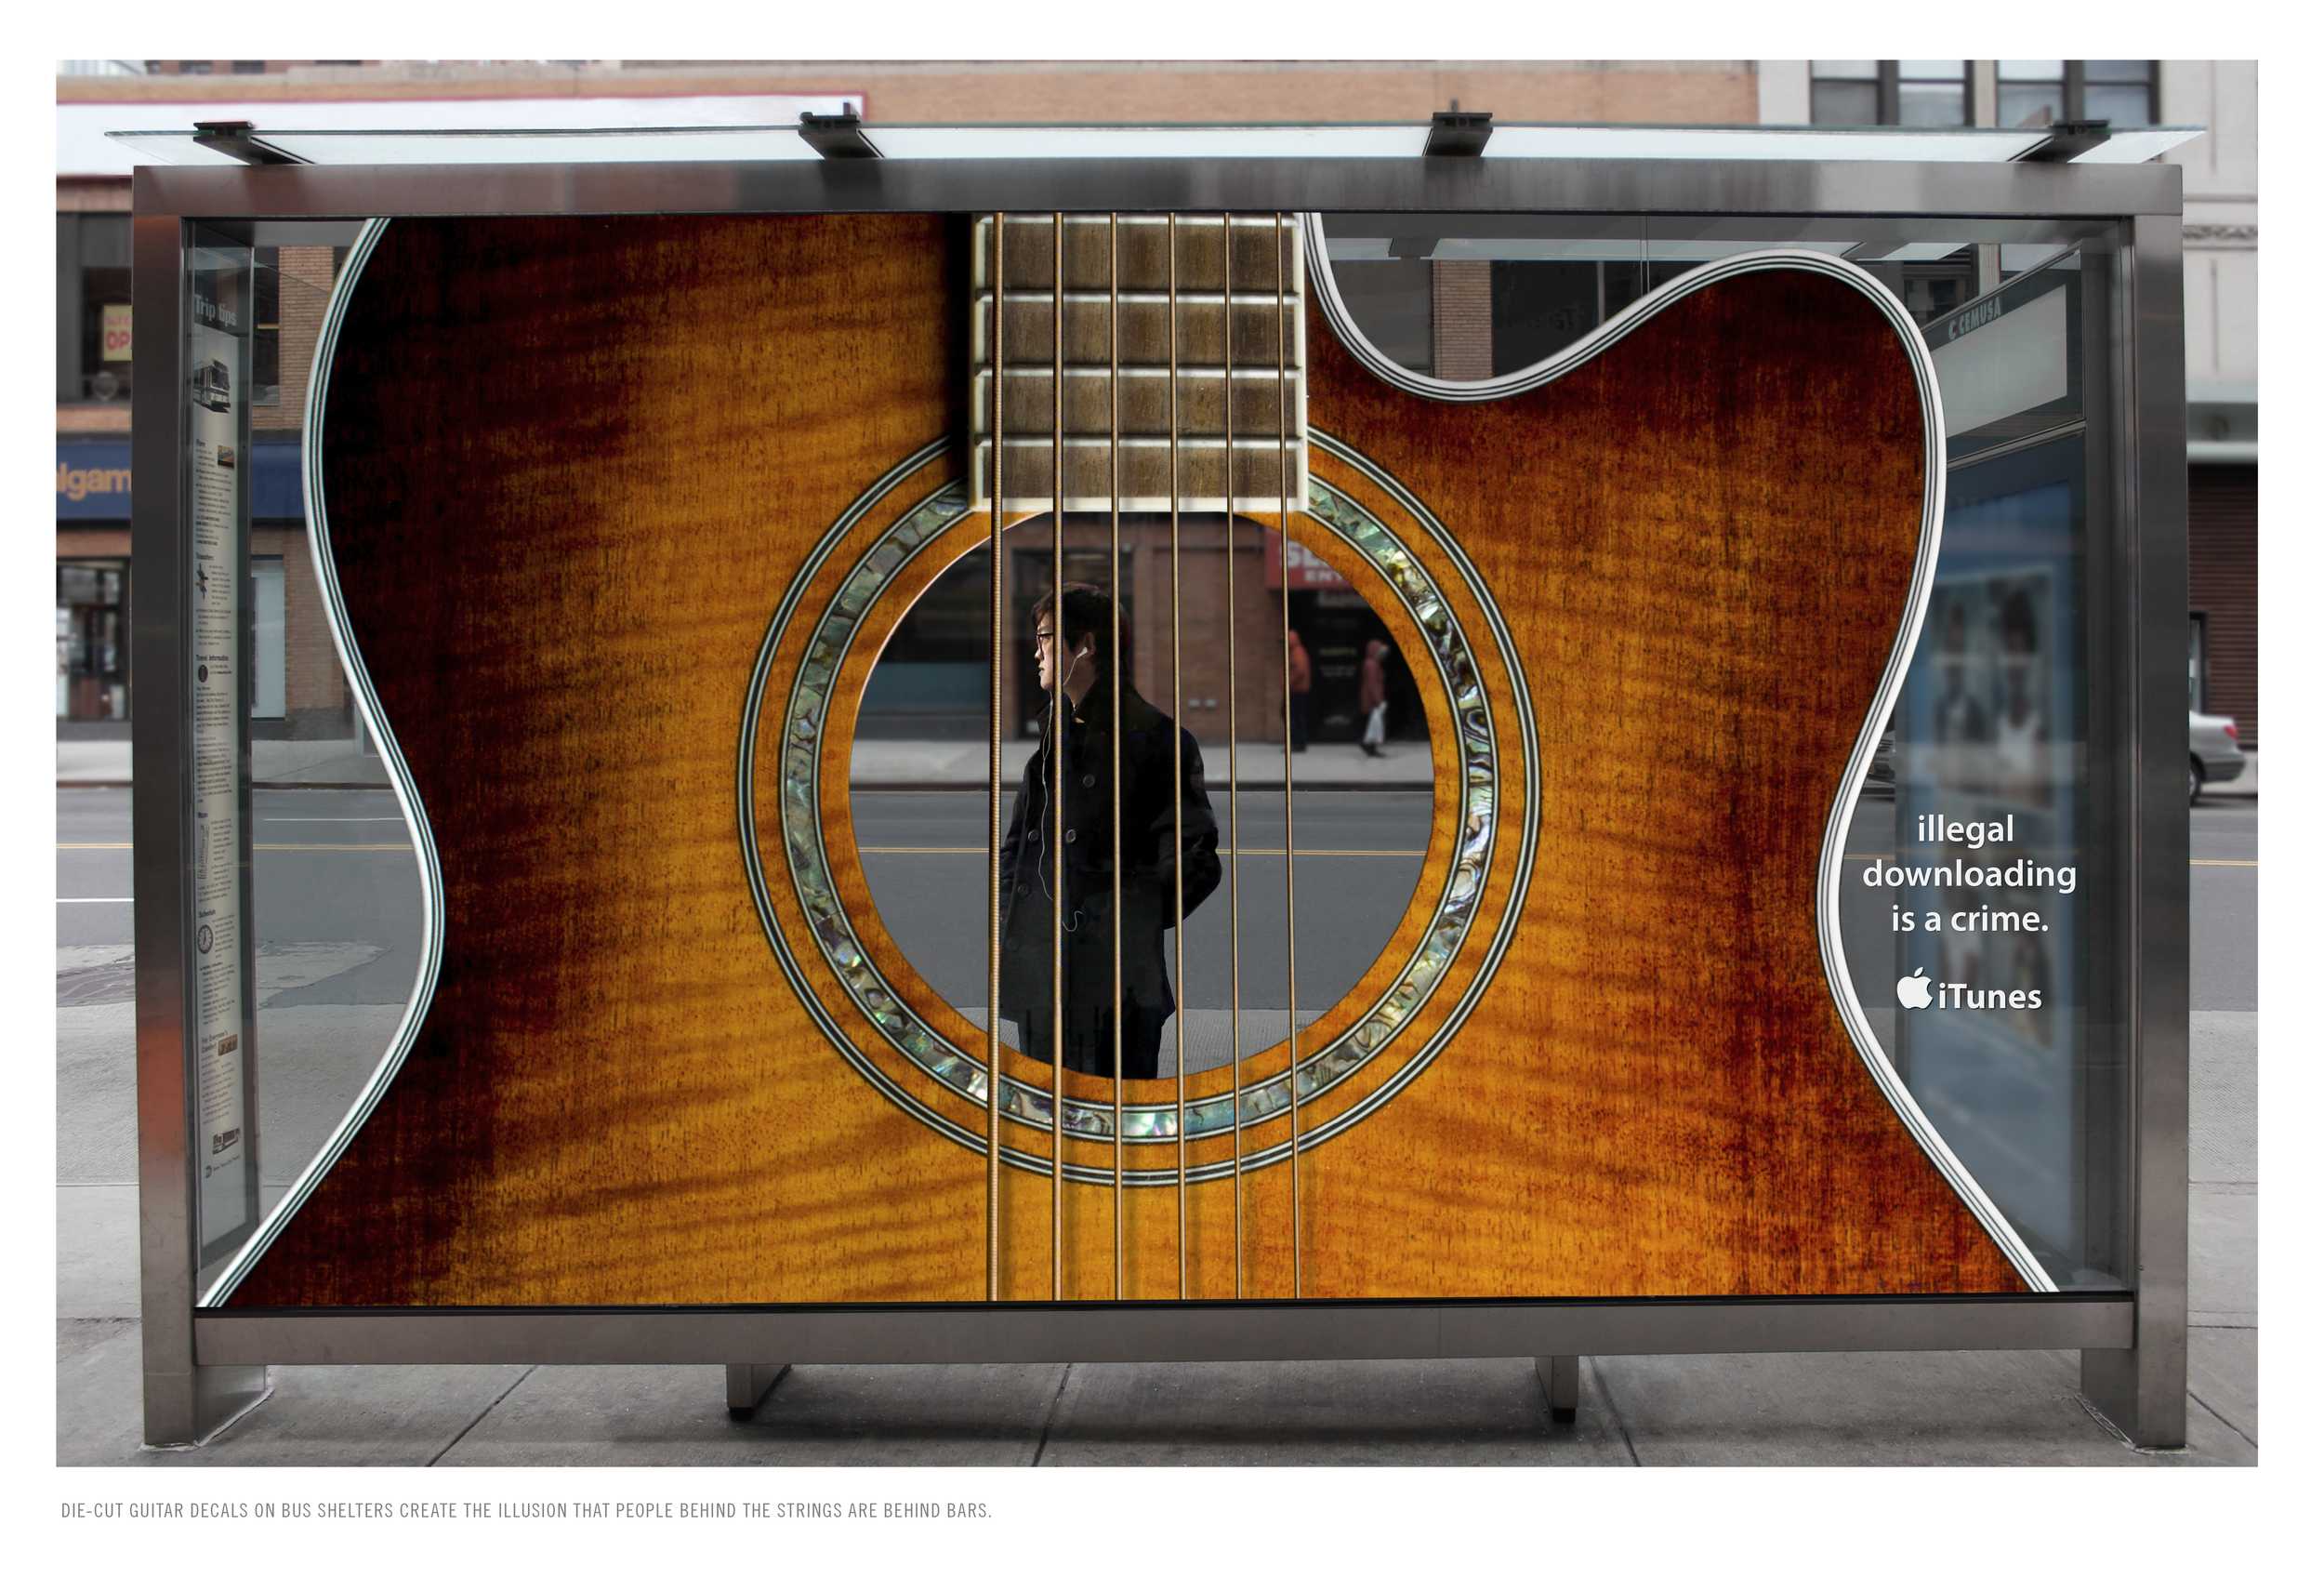 DIE-CUT GUITAR DECALS ON BUS SHELTERS CREATE THE ILLUSION THAT PEOPLE BEHIND THE STRINGS ARE BEHIND BARS.